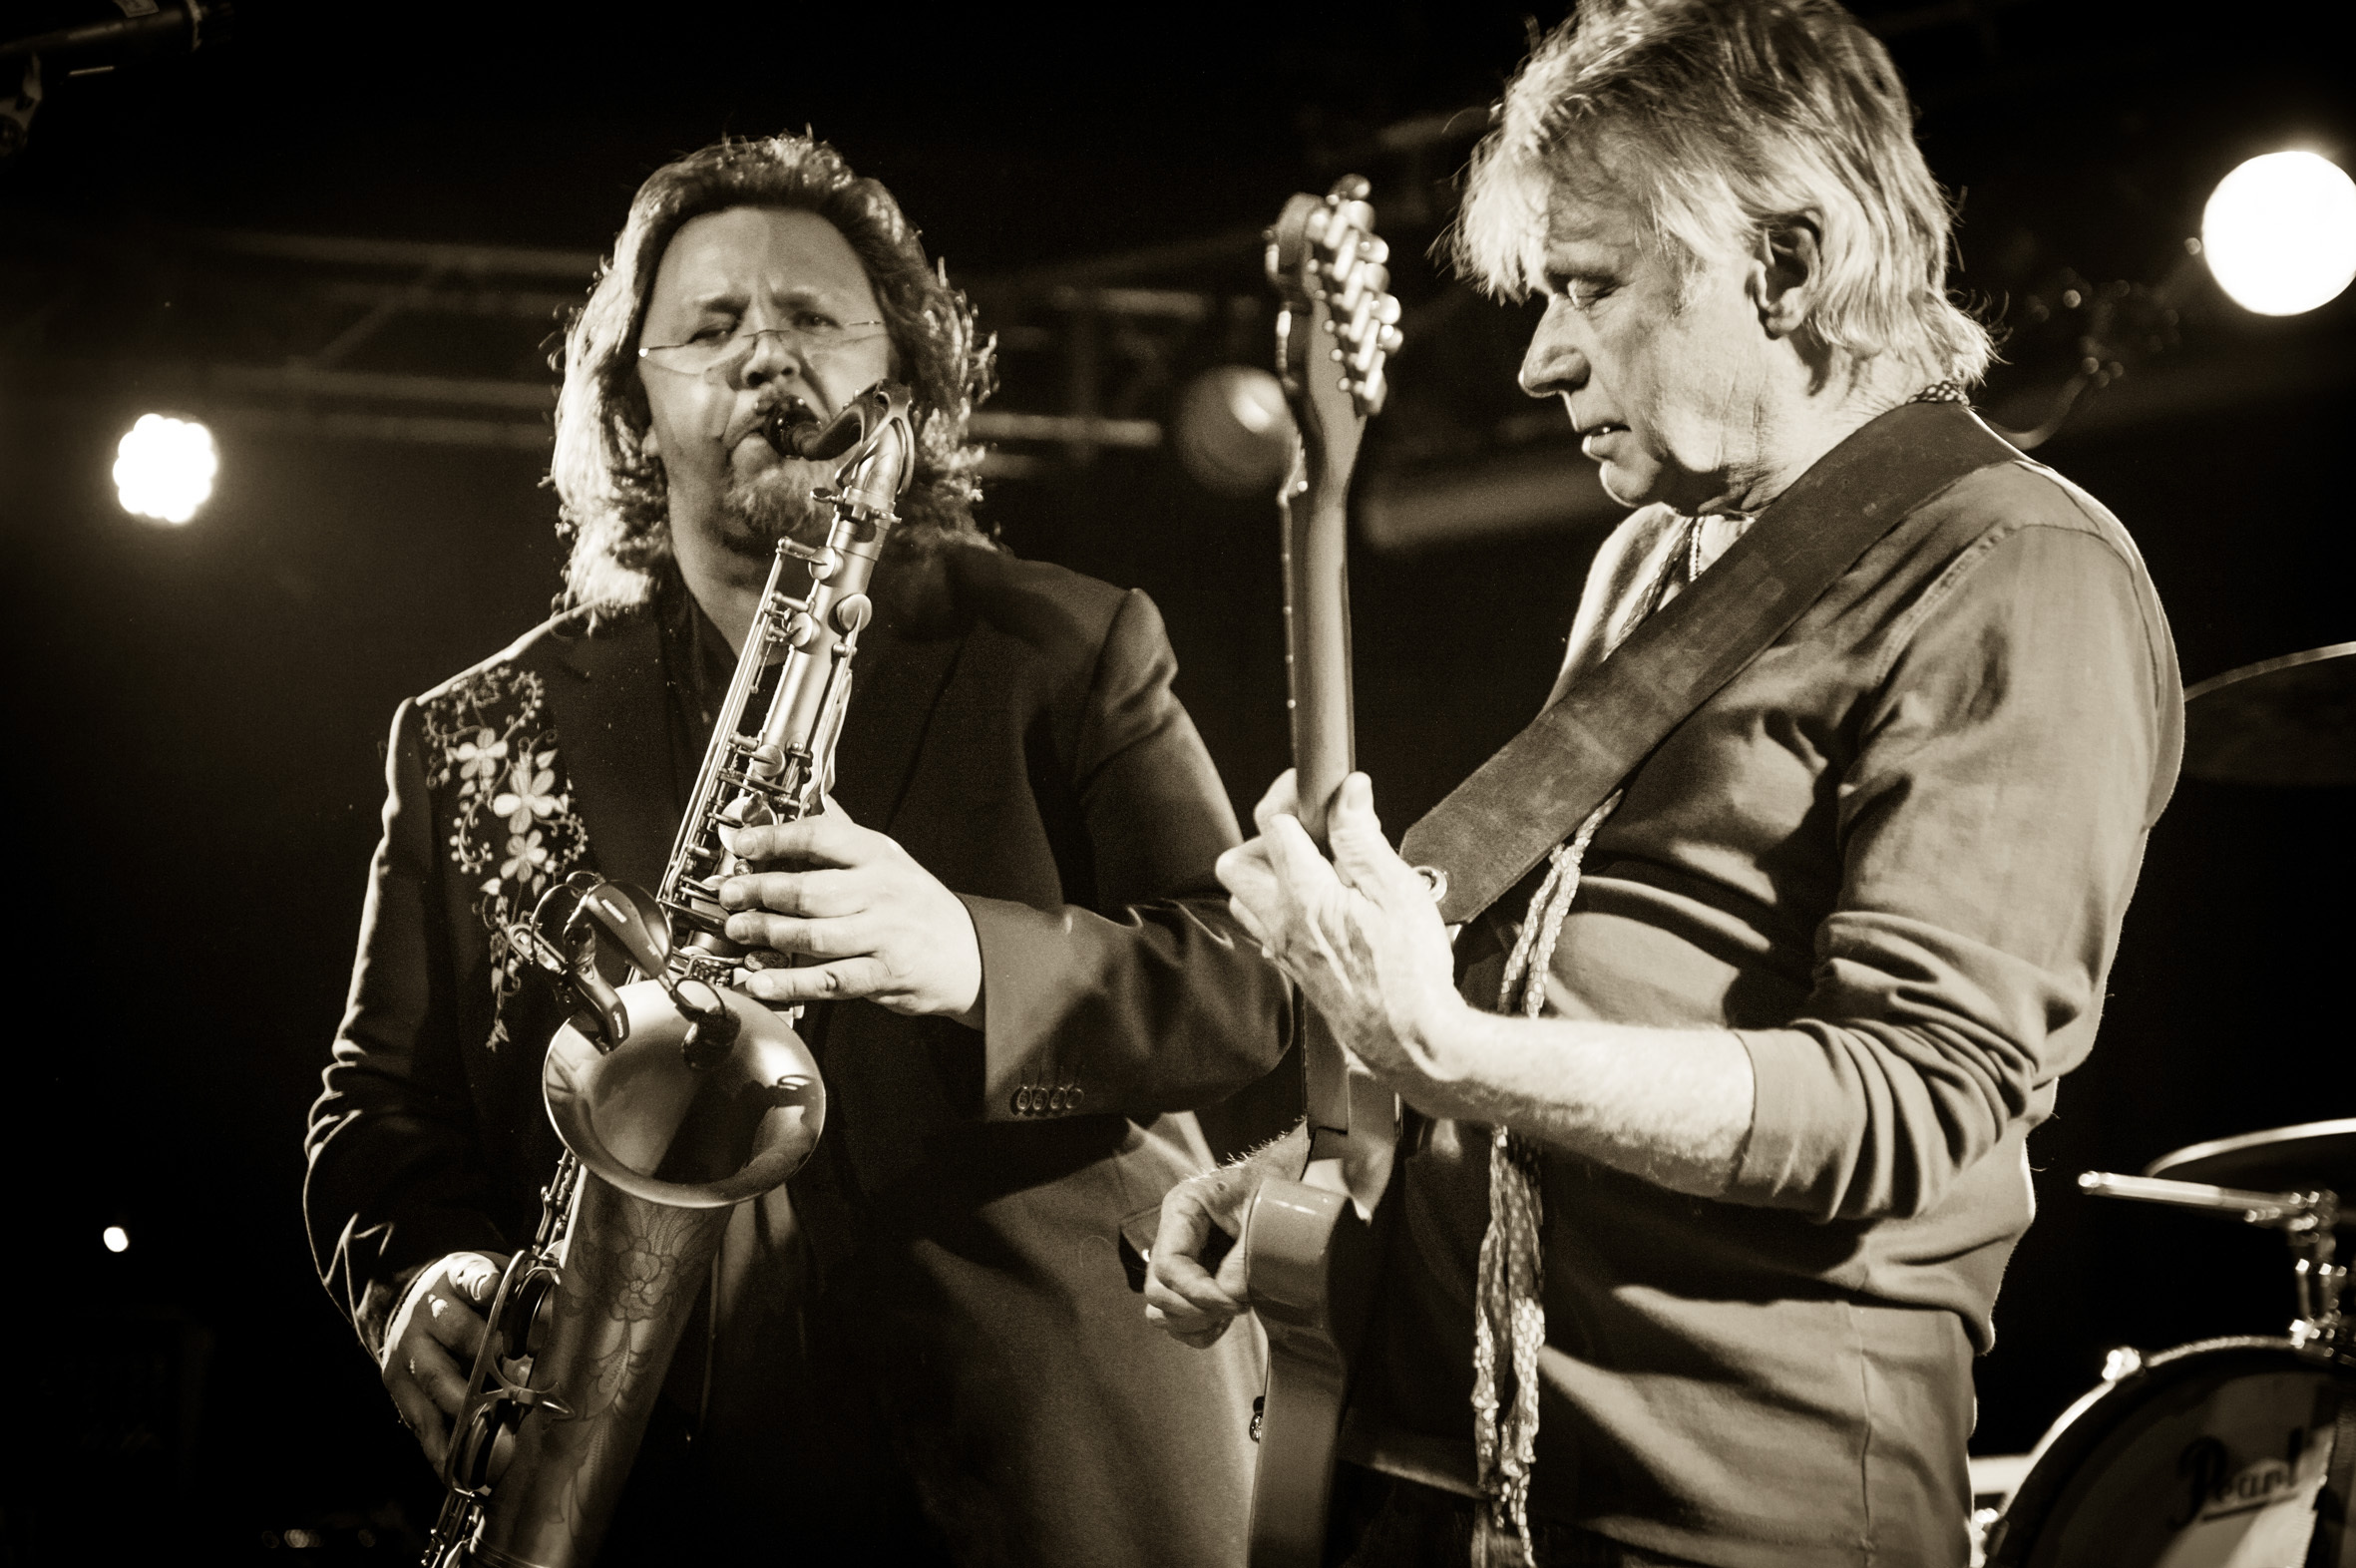 Micke Finell with Dave Edmunds